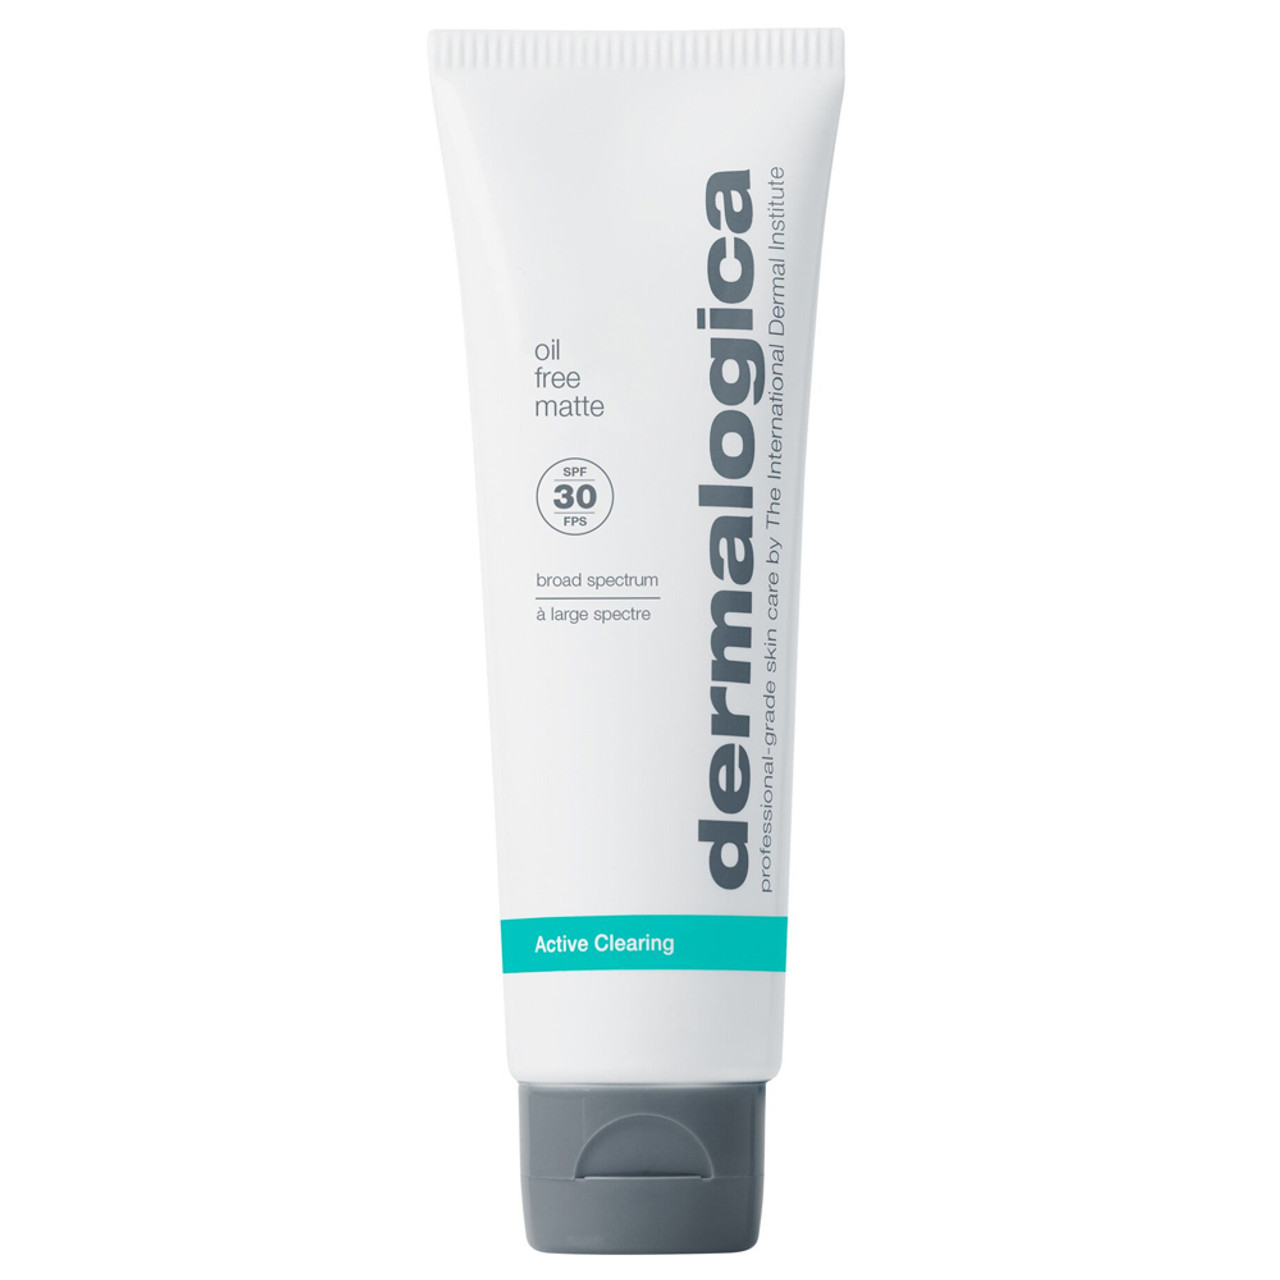 Dermalogica Active Clearing Oil Free Matte SPF 30